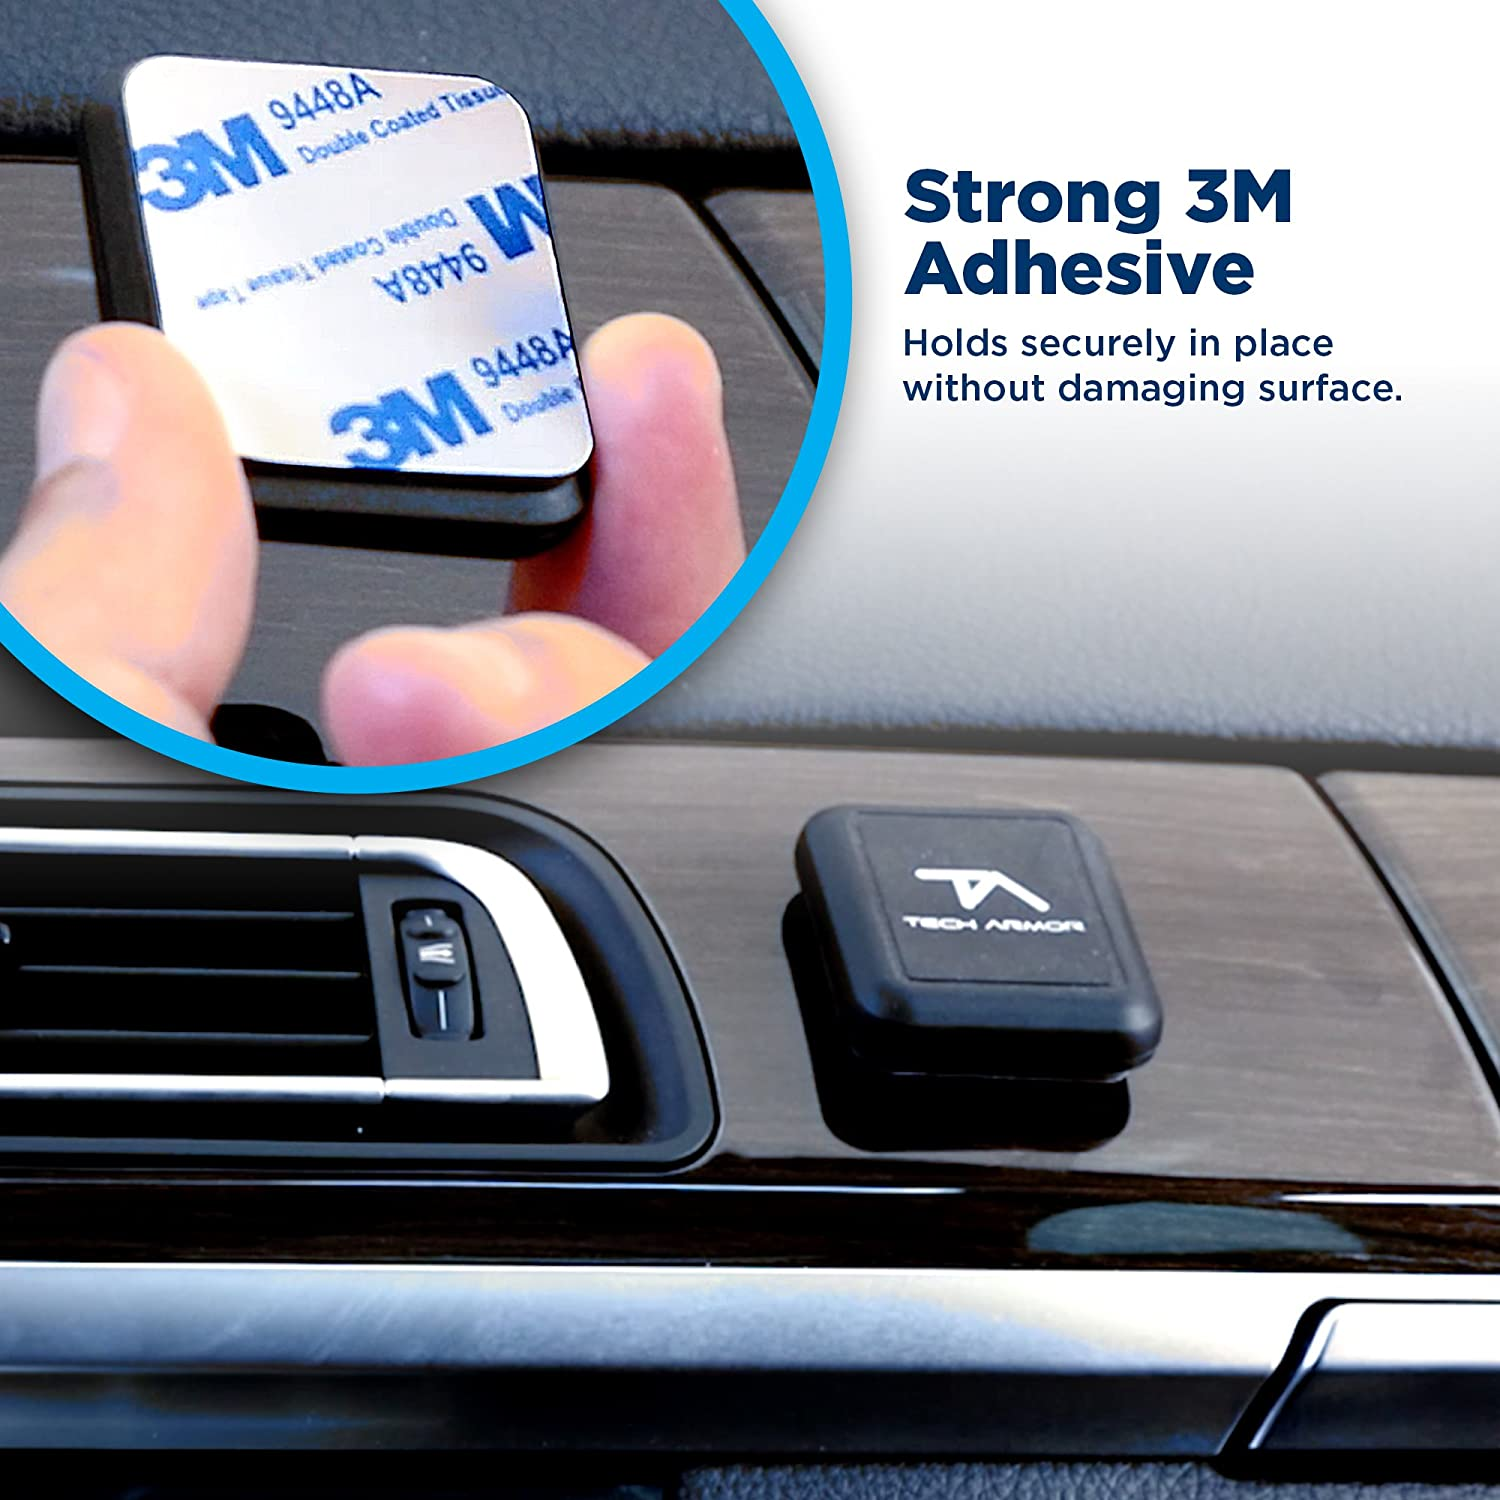 3M Adhesion Black Google for iPhone Tech Armor Universal Magnetic Car Mount Galaxy LG and More Stick Anywhere